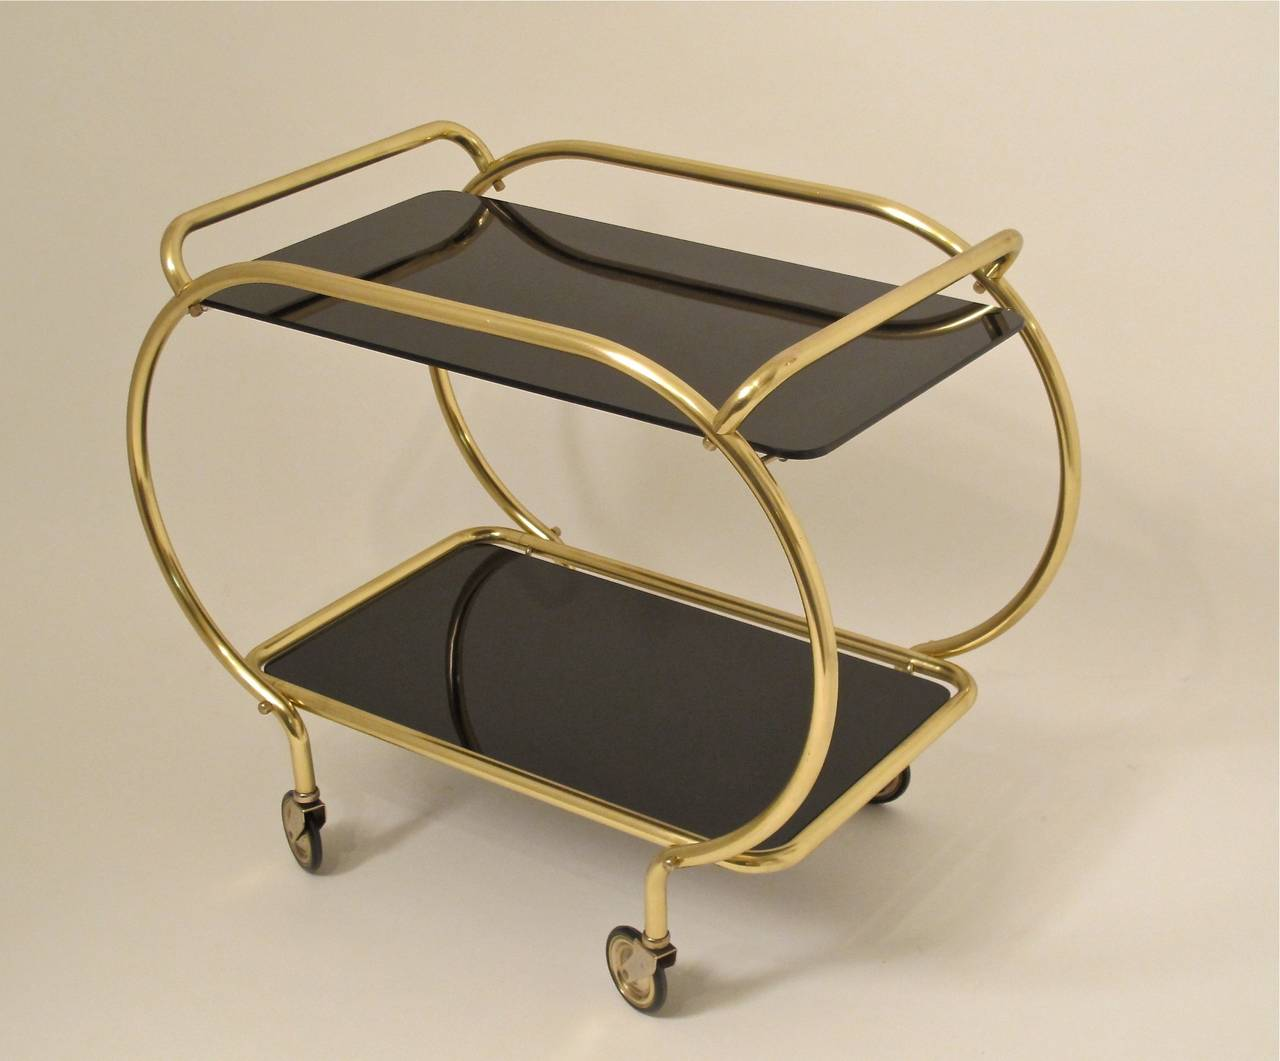 An unusual brass and vitrolite (black glass) bar or serving cart, American, 1930s-1940s.